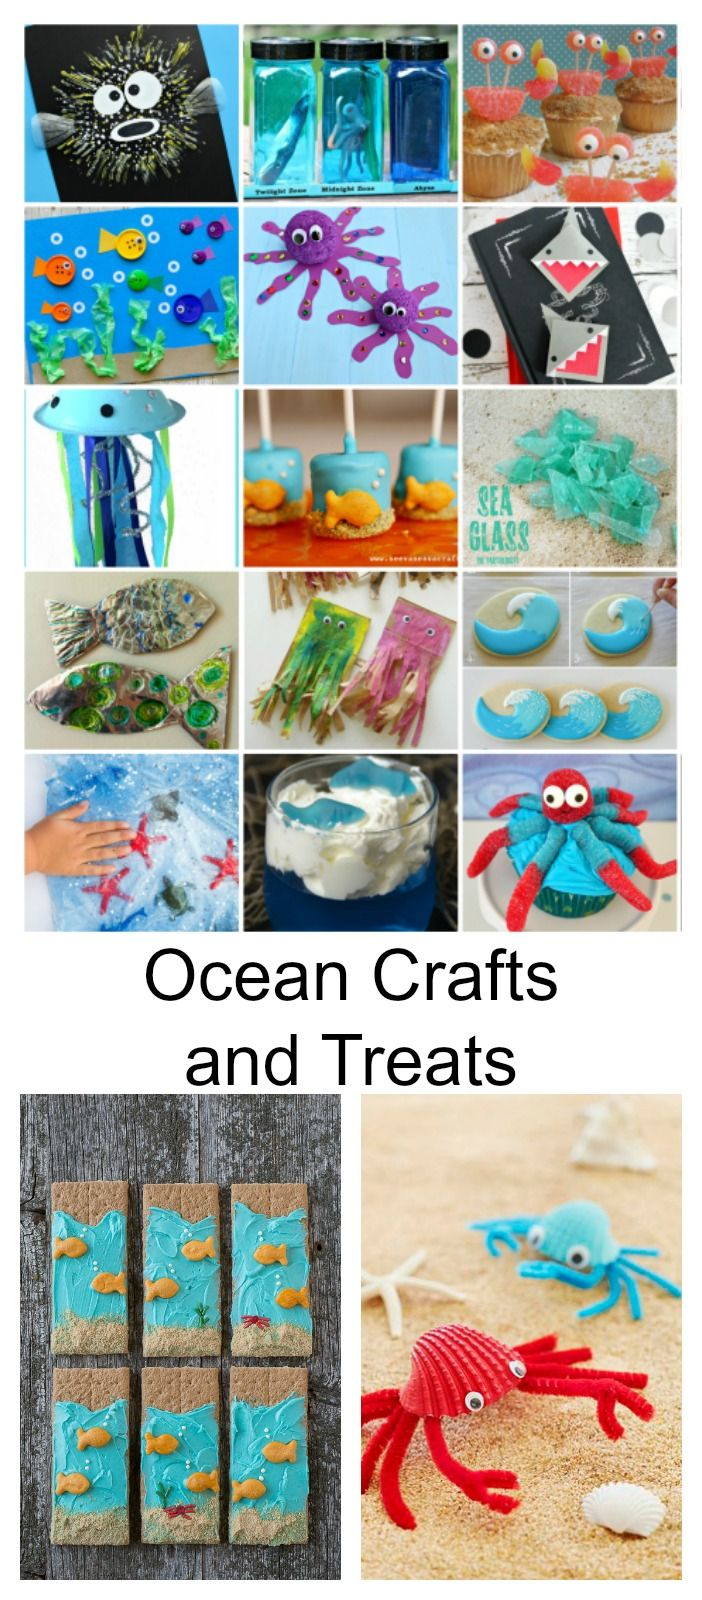 Craft Ideas| It's summertime and some of you may be heading to the ocean. For those of you that are not, why not bring the ocean to you with these fun Ocean Crafts and Treats. These ideas would also be great for an ocean themed party or school craft idea. Which ones are your favorites?